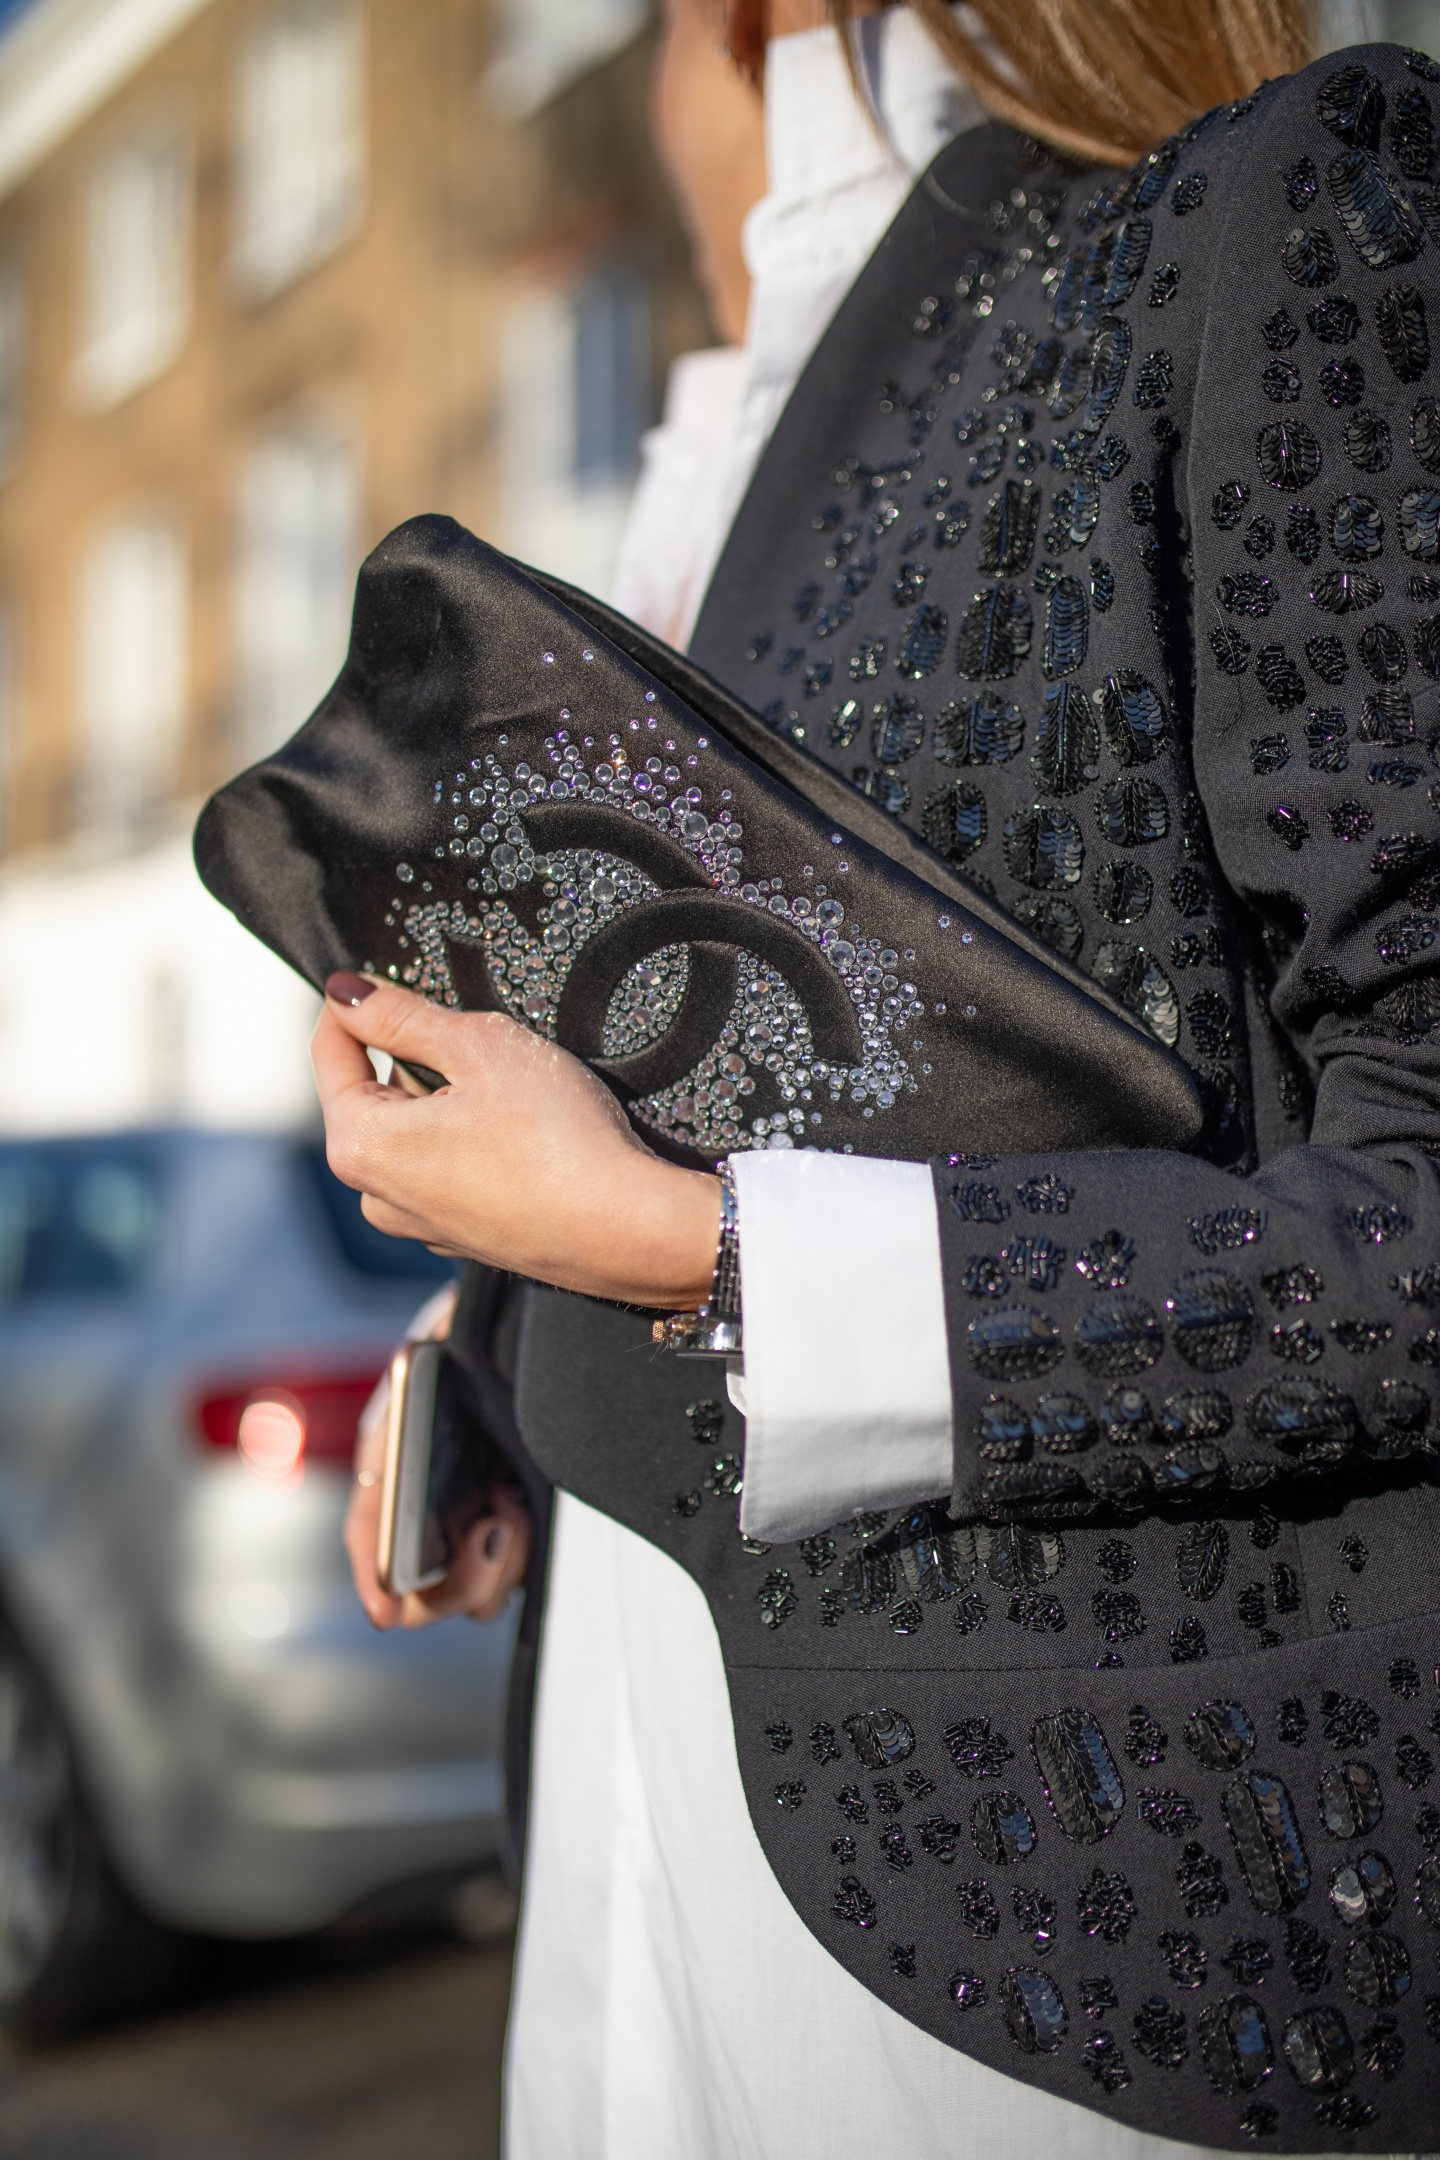 LFW 2 – Suited & Booted – Celine & Pucci